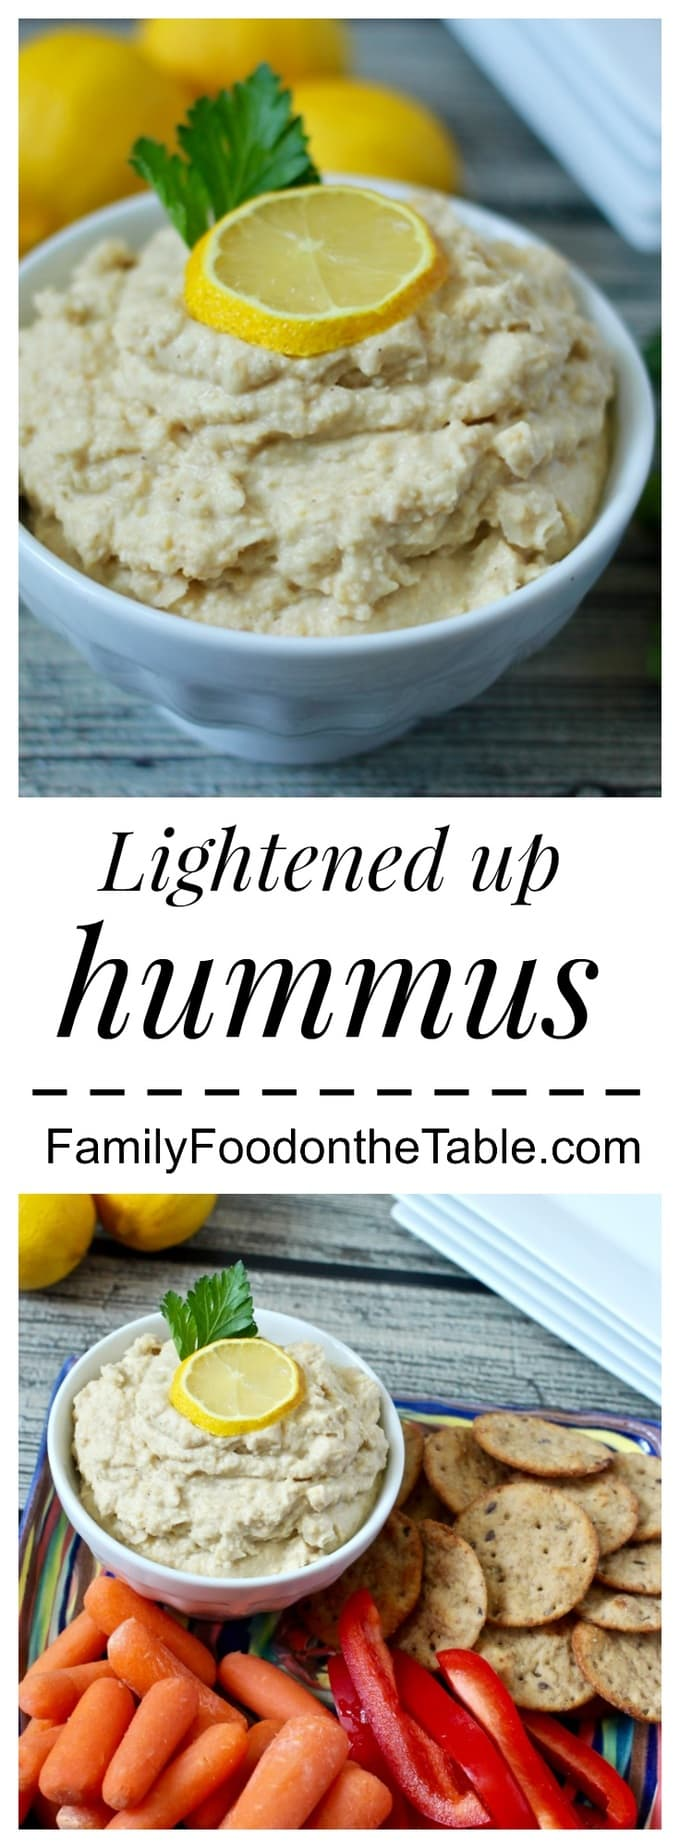 A super creamy, bright 5-ingredient homemade hummus recipe, ready in just 5 minutes! | FamilyFoodontheTable.com